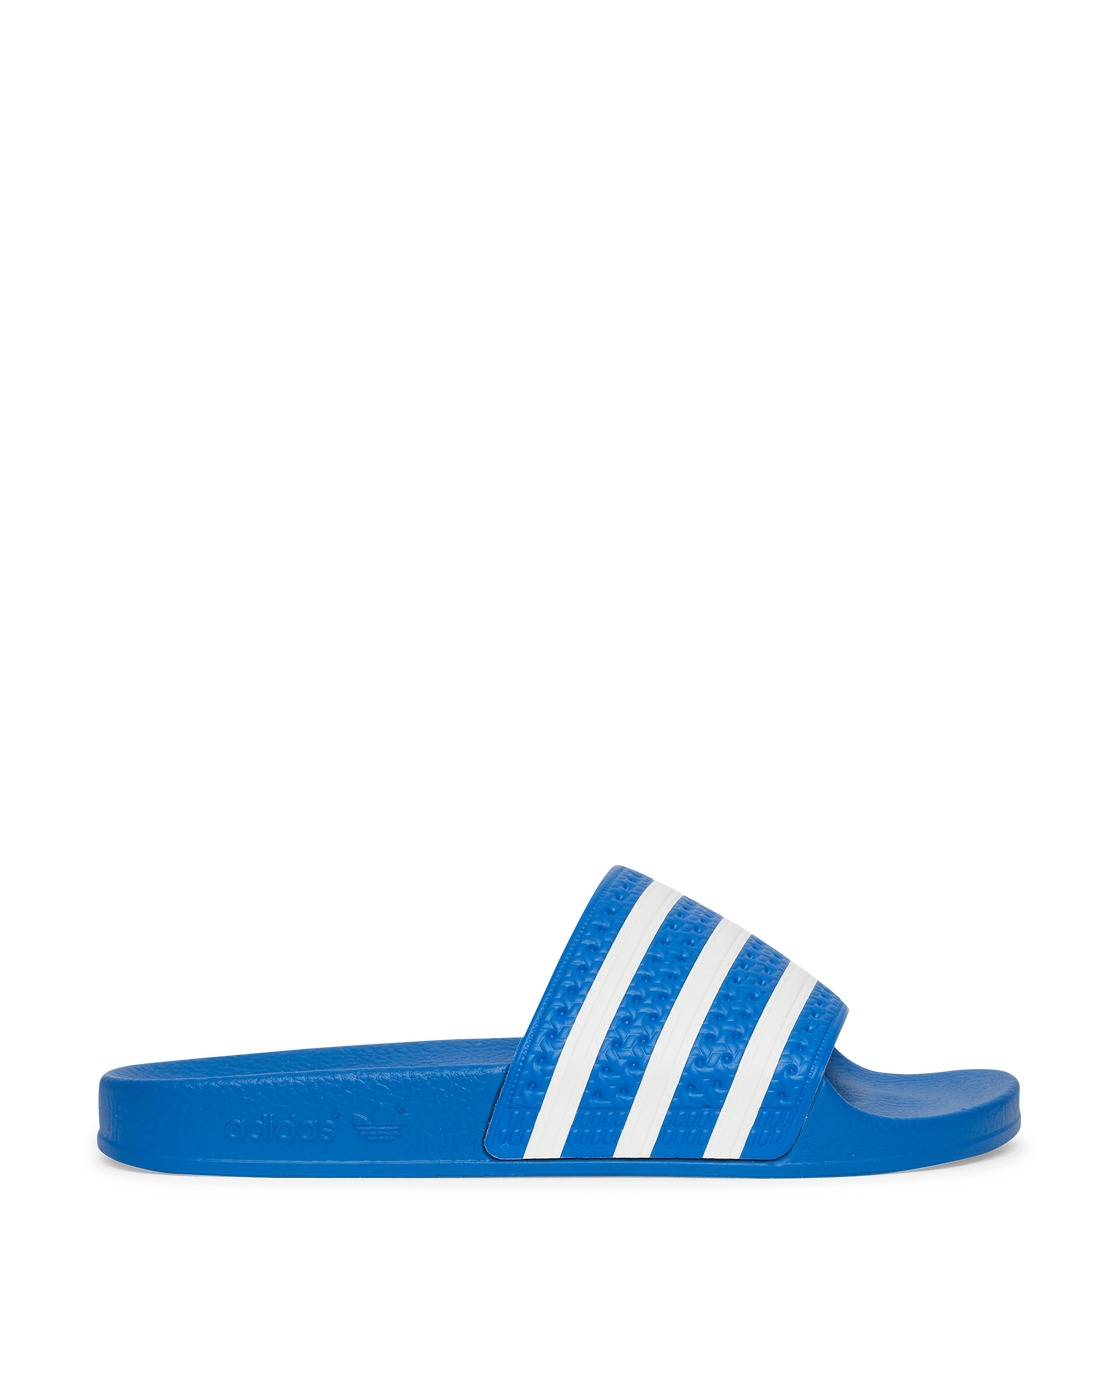 Photo: Adidas Originals Adilette Slides Glory Blue/Ftwr White